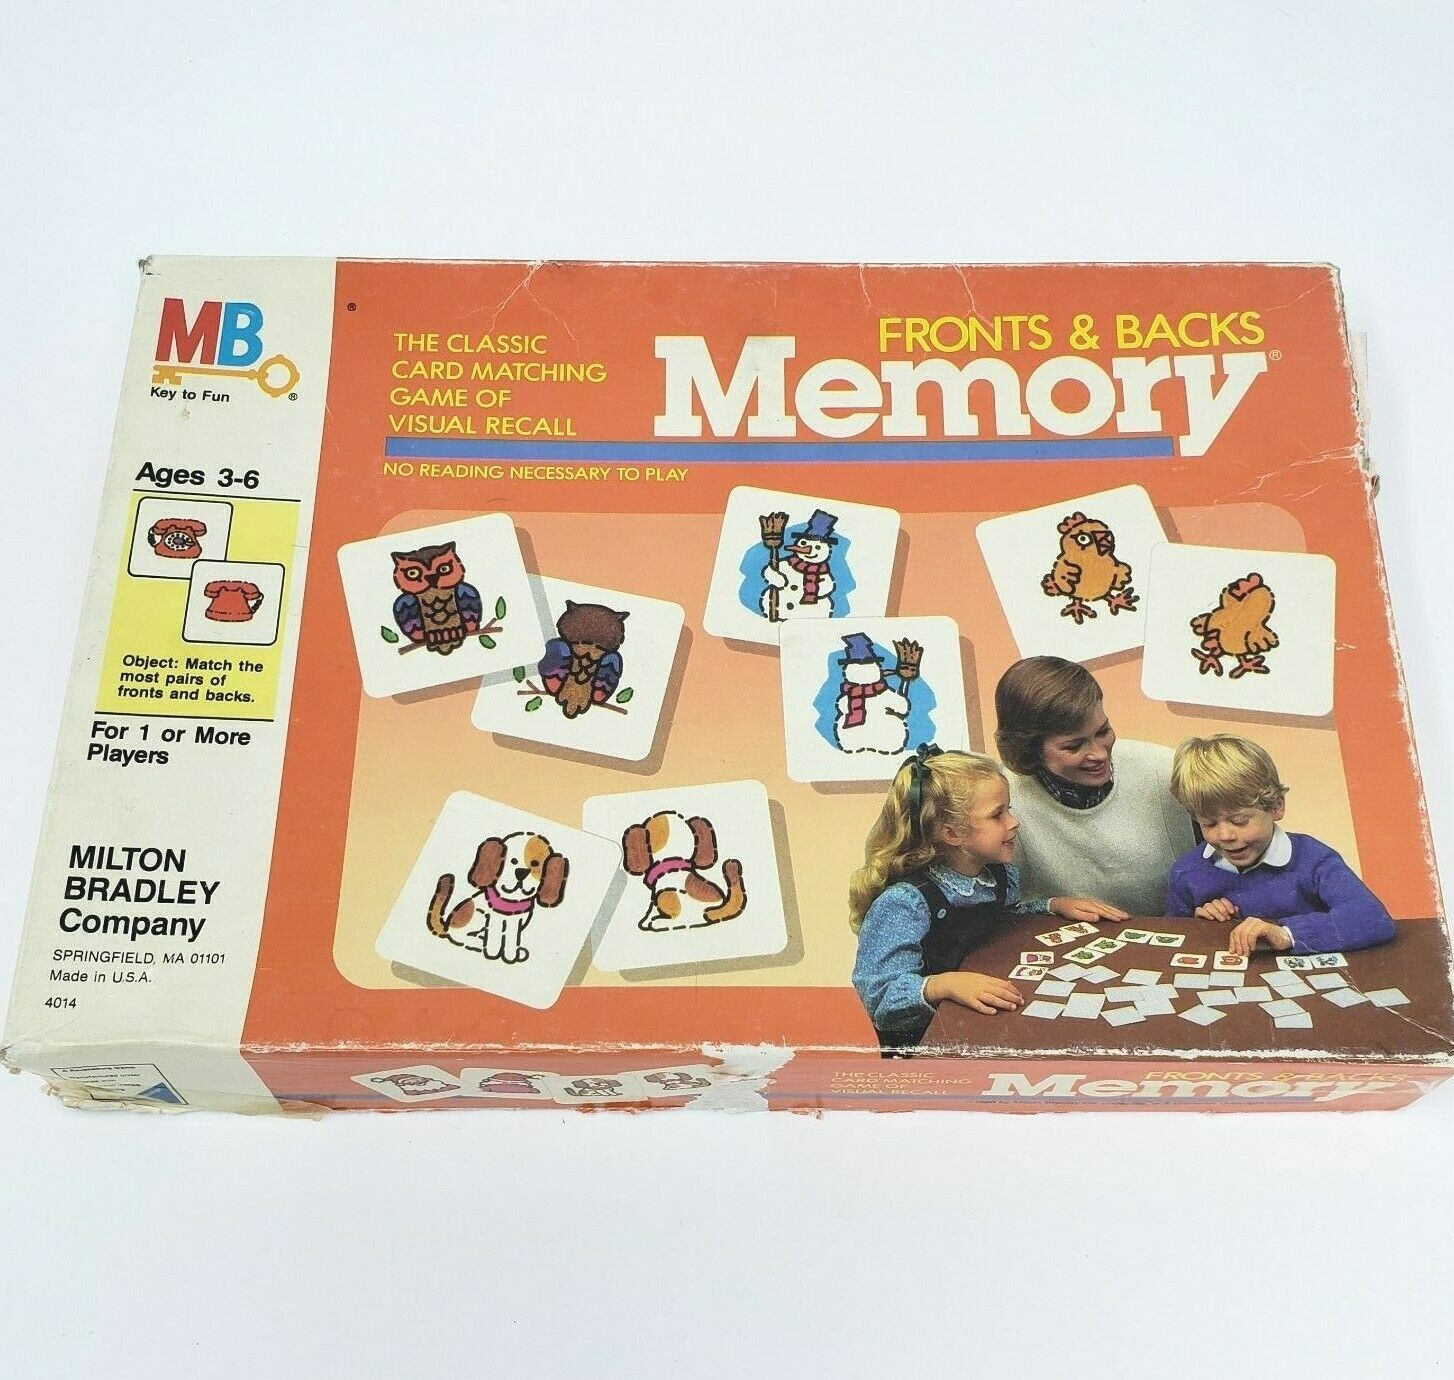 Primary image for VINTAGE 1980s MEMORY FRONTS AND BACKS MATCHING CARD GAME IN BOX MILTON BRADLEY